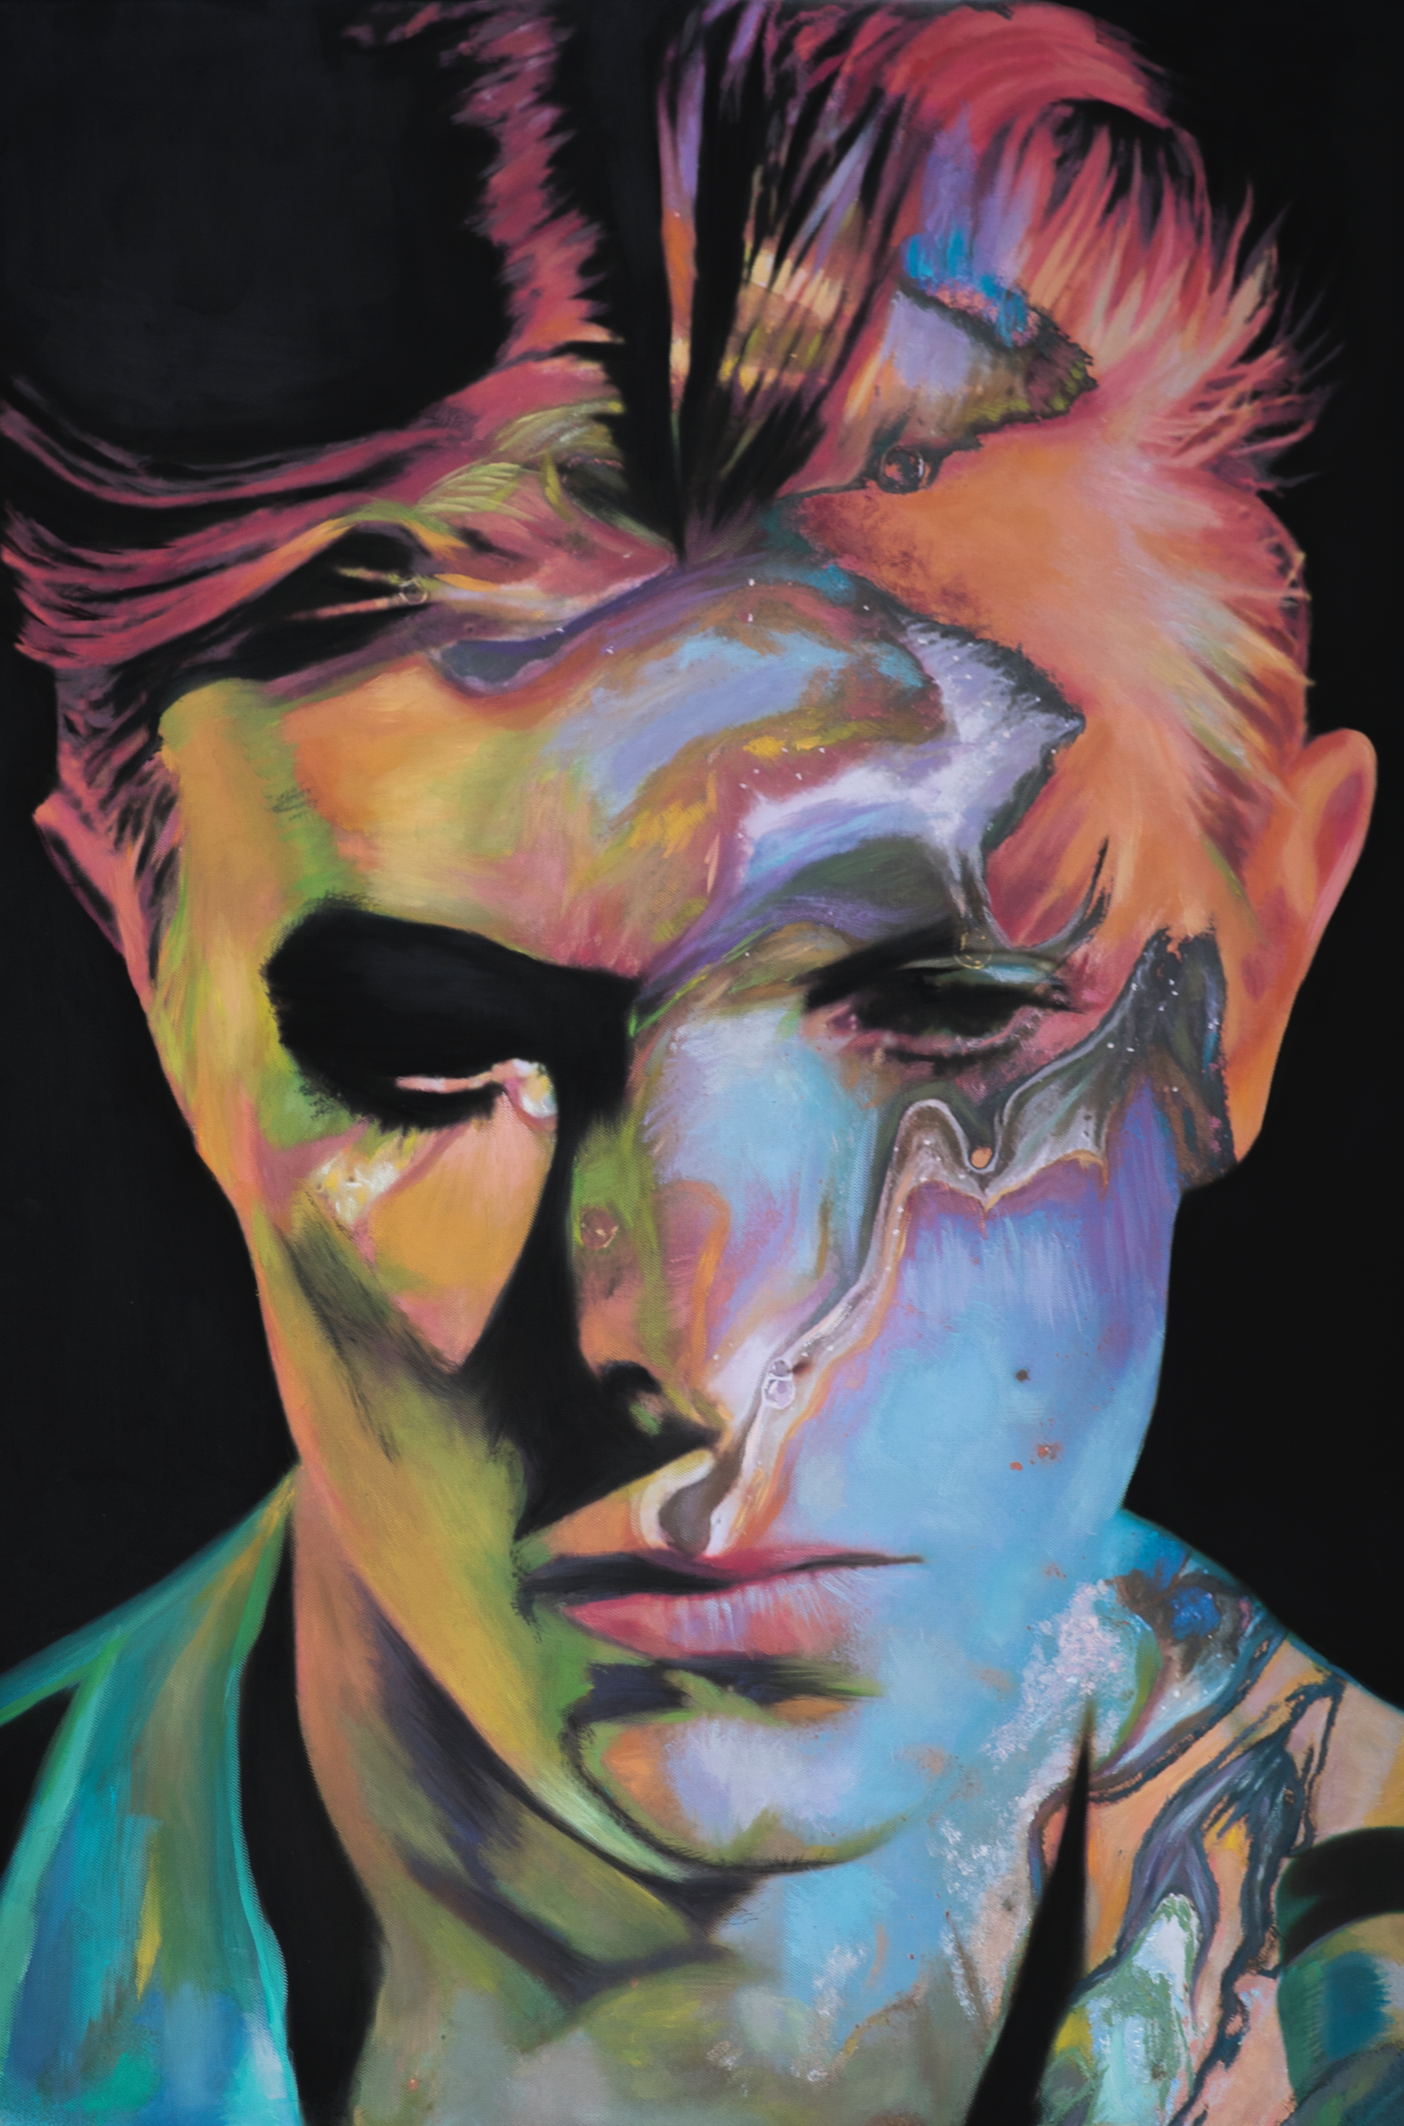 Starman Davie Bowie Painting Sophie Barrott |  Artist | Art Prints